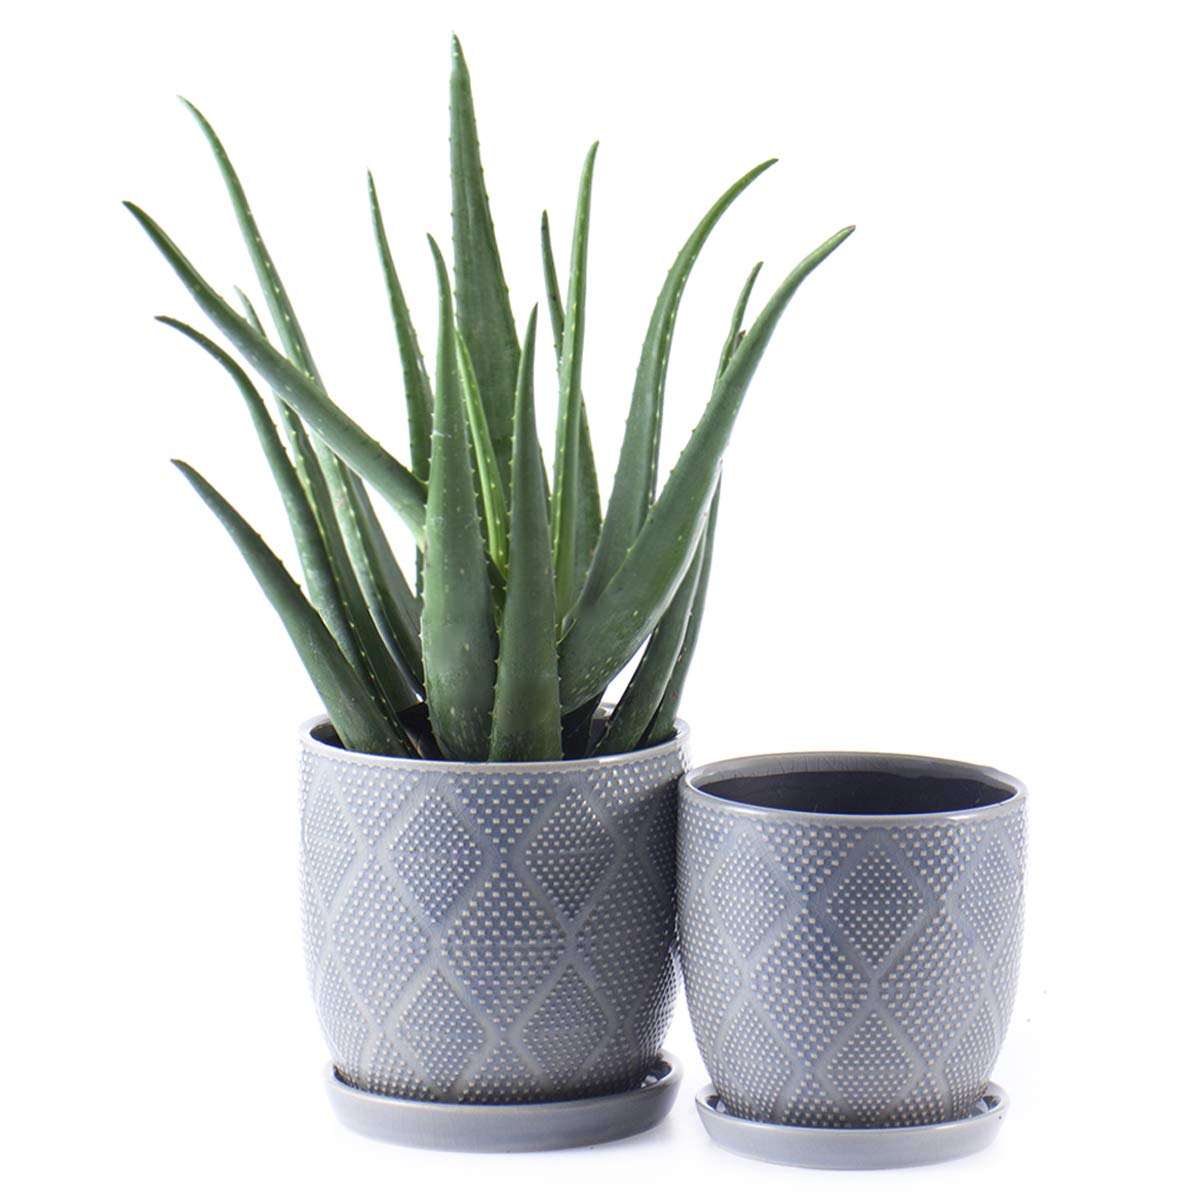 "KYY Ceramic Planters Garden Flower Pots with Drainage Holes and Saucers 6.5"" and 5.5"" Set of 2 Indoor Outdoor Modern Plant Containers (Blue Grey)"